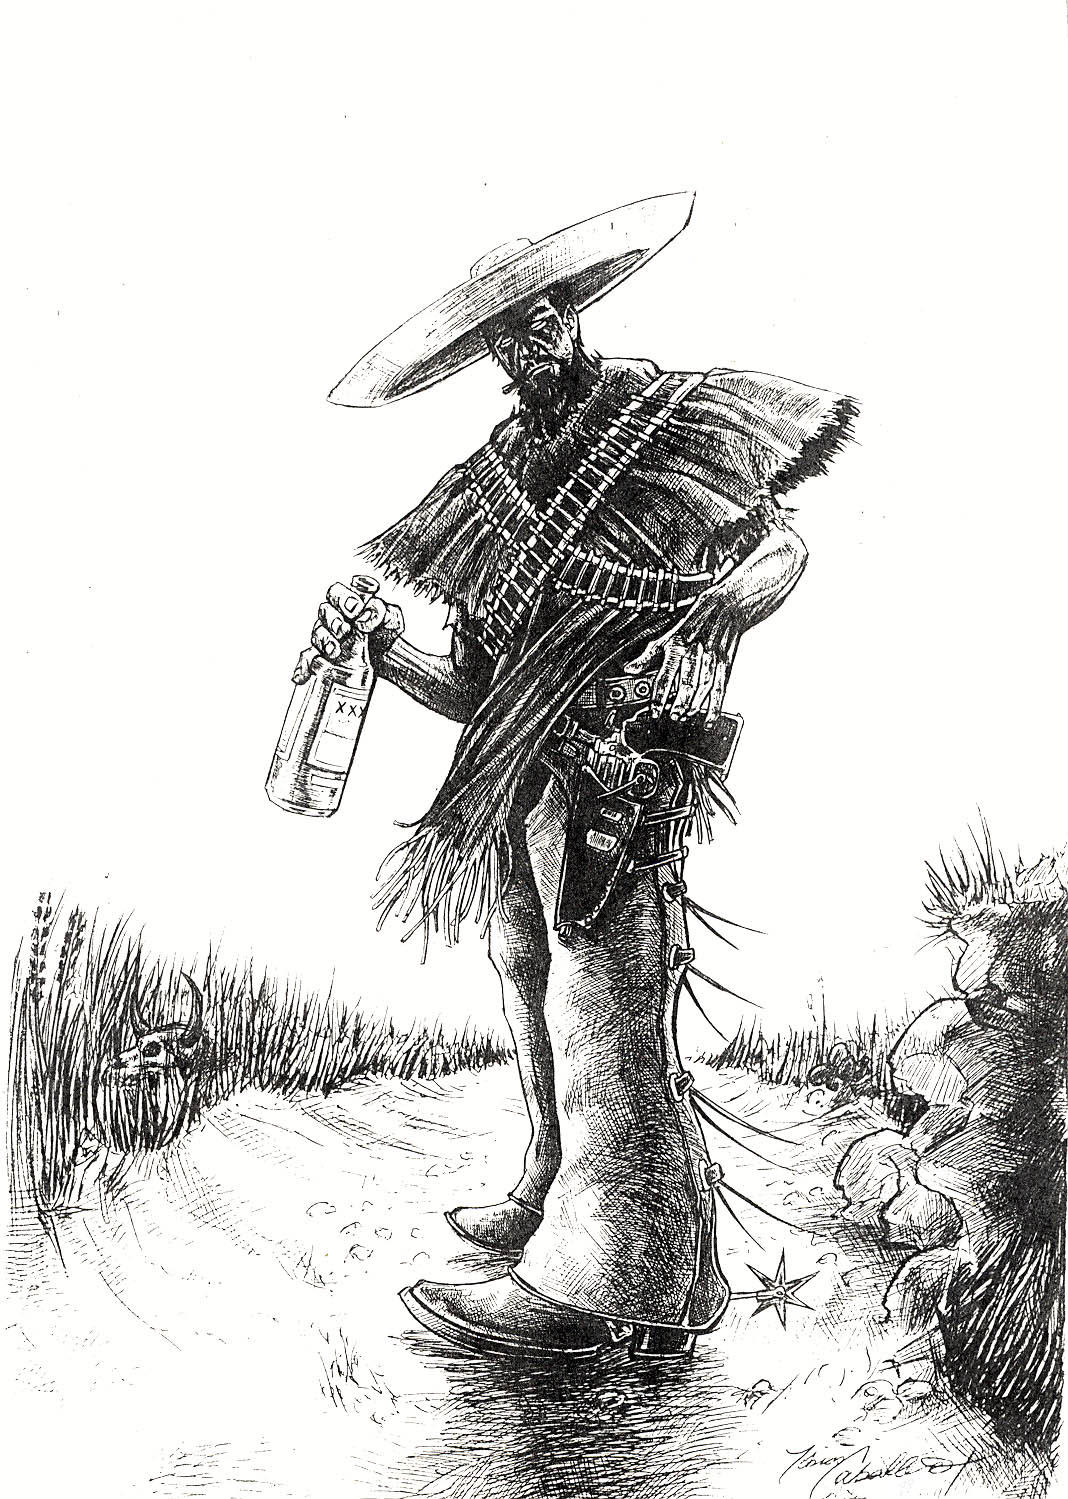 pancho villa draw by pancho villa on pancho villa draw by pancho villa